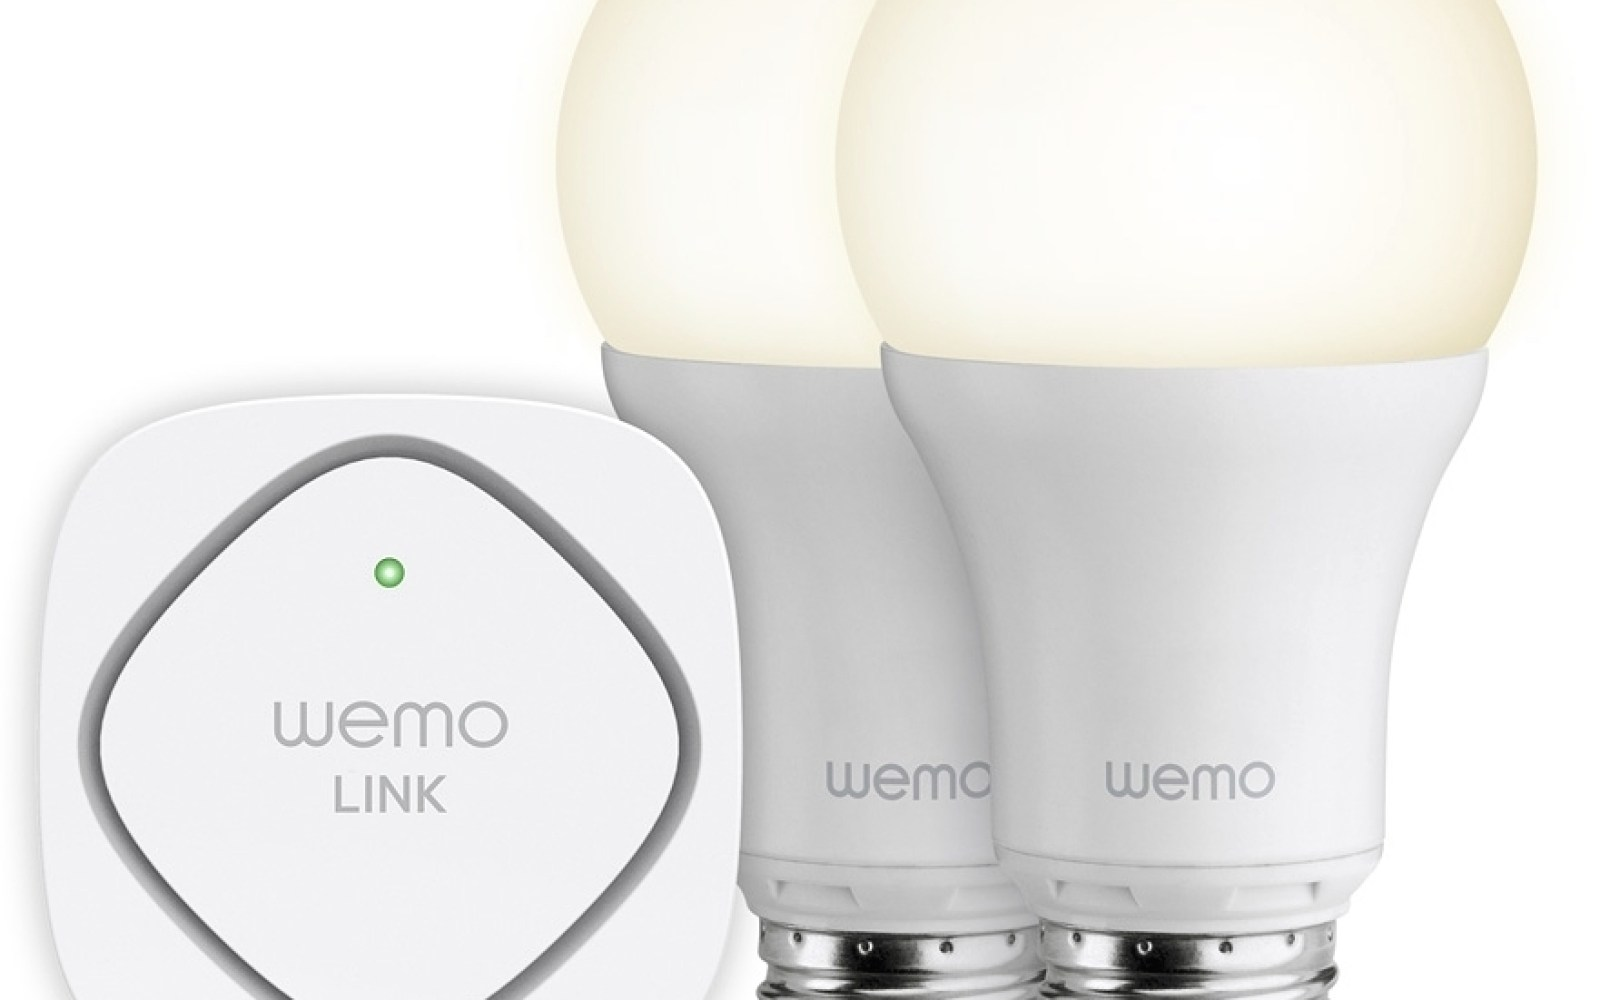 Belkin's WeMo lineup now includes $30 smart LED bulbs